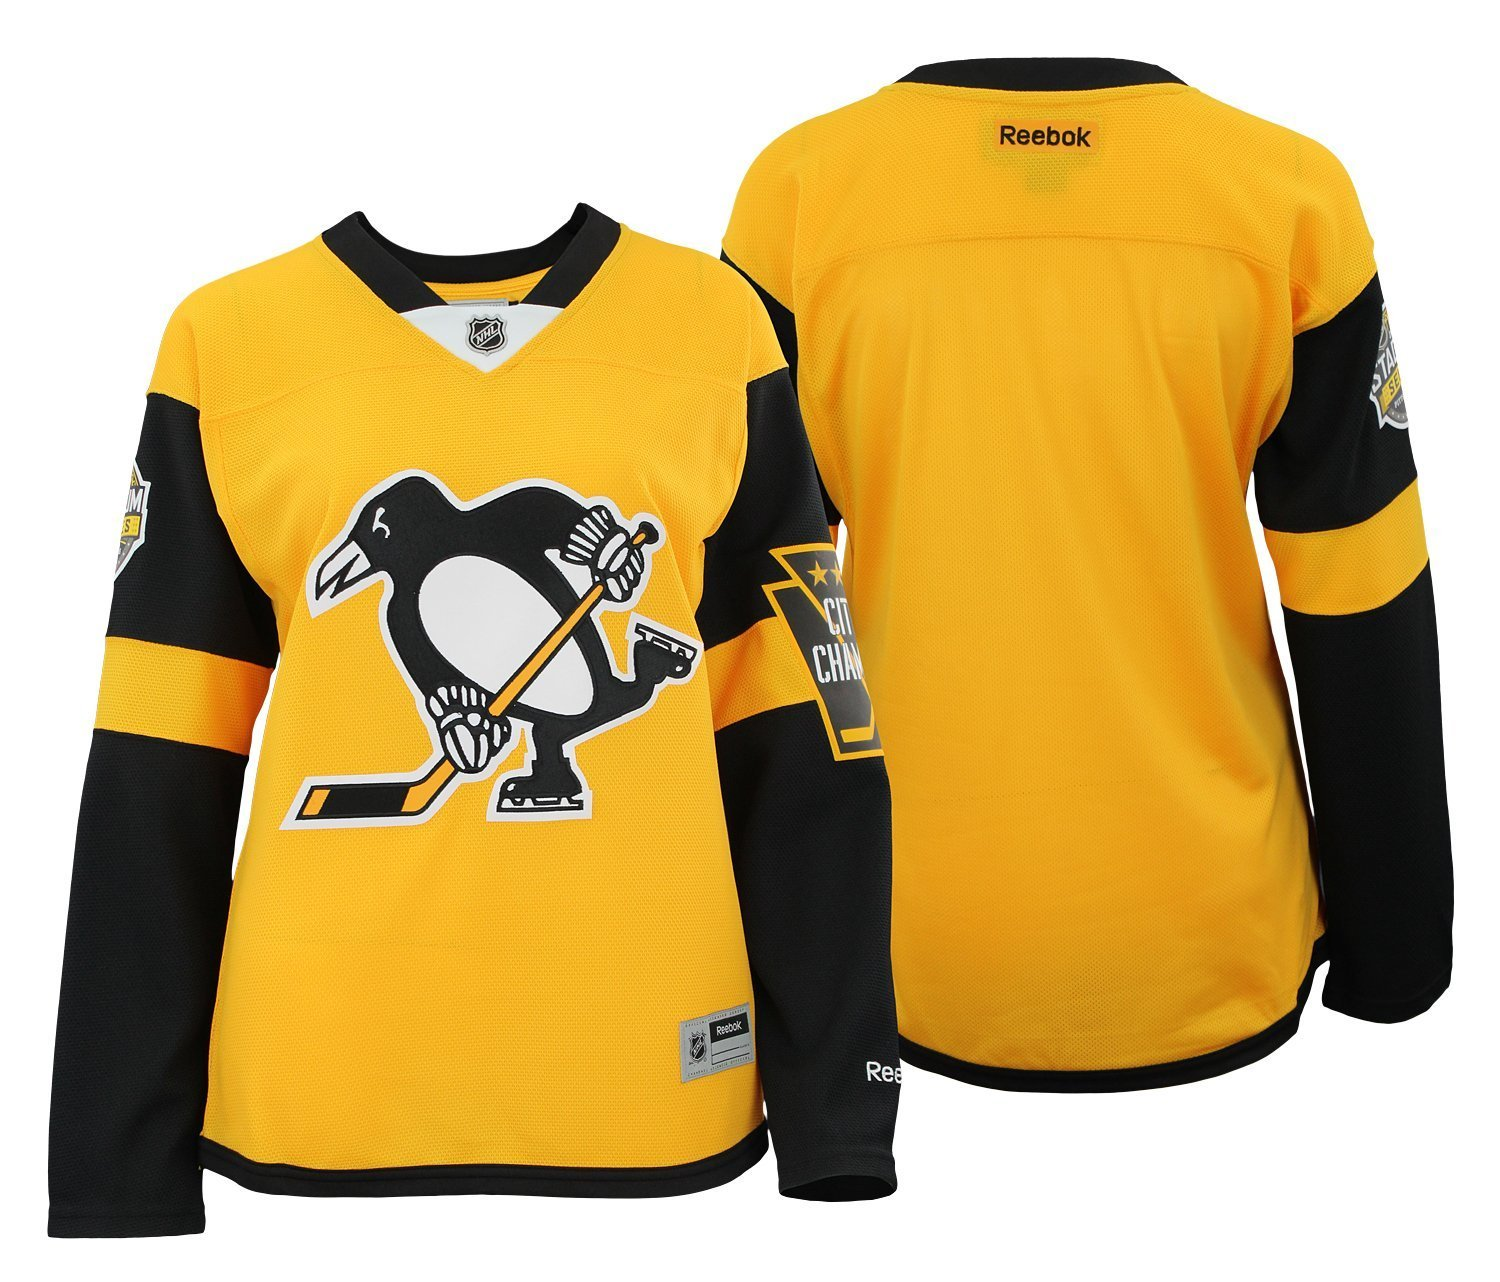 pittsburgh penguins jersey 2017